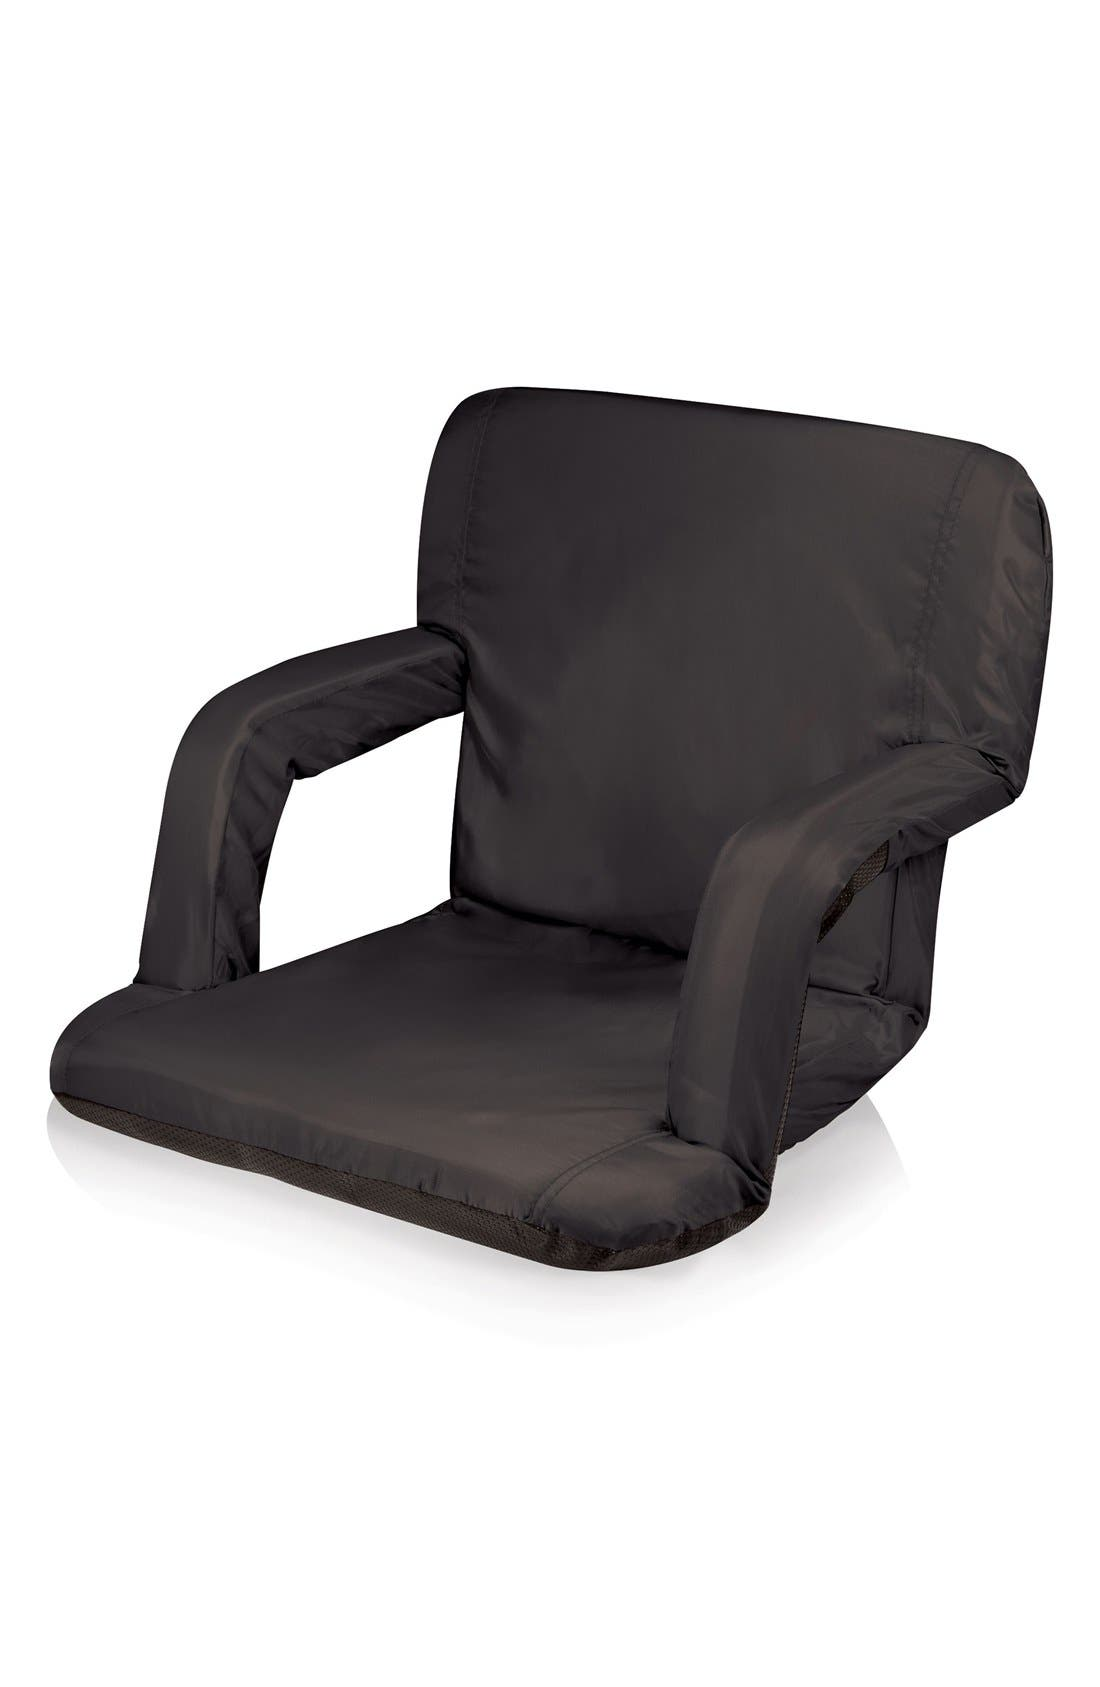 'VenturaSeat' Portable Fold-Up Chair,                         Main,                         color, BLACK